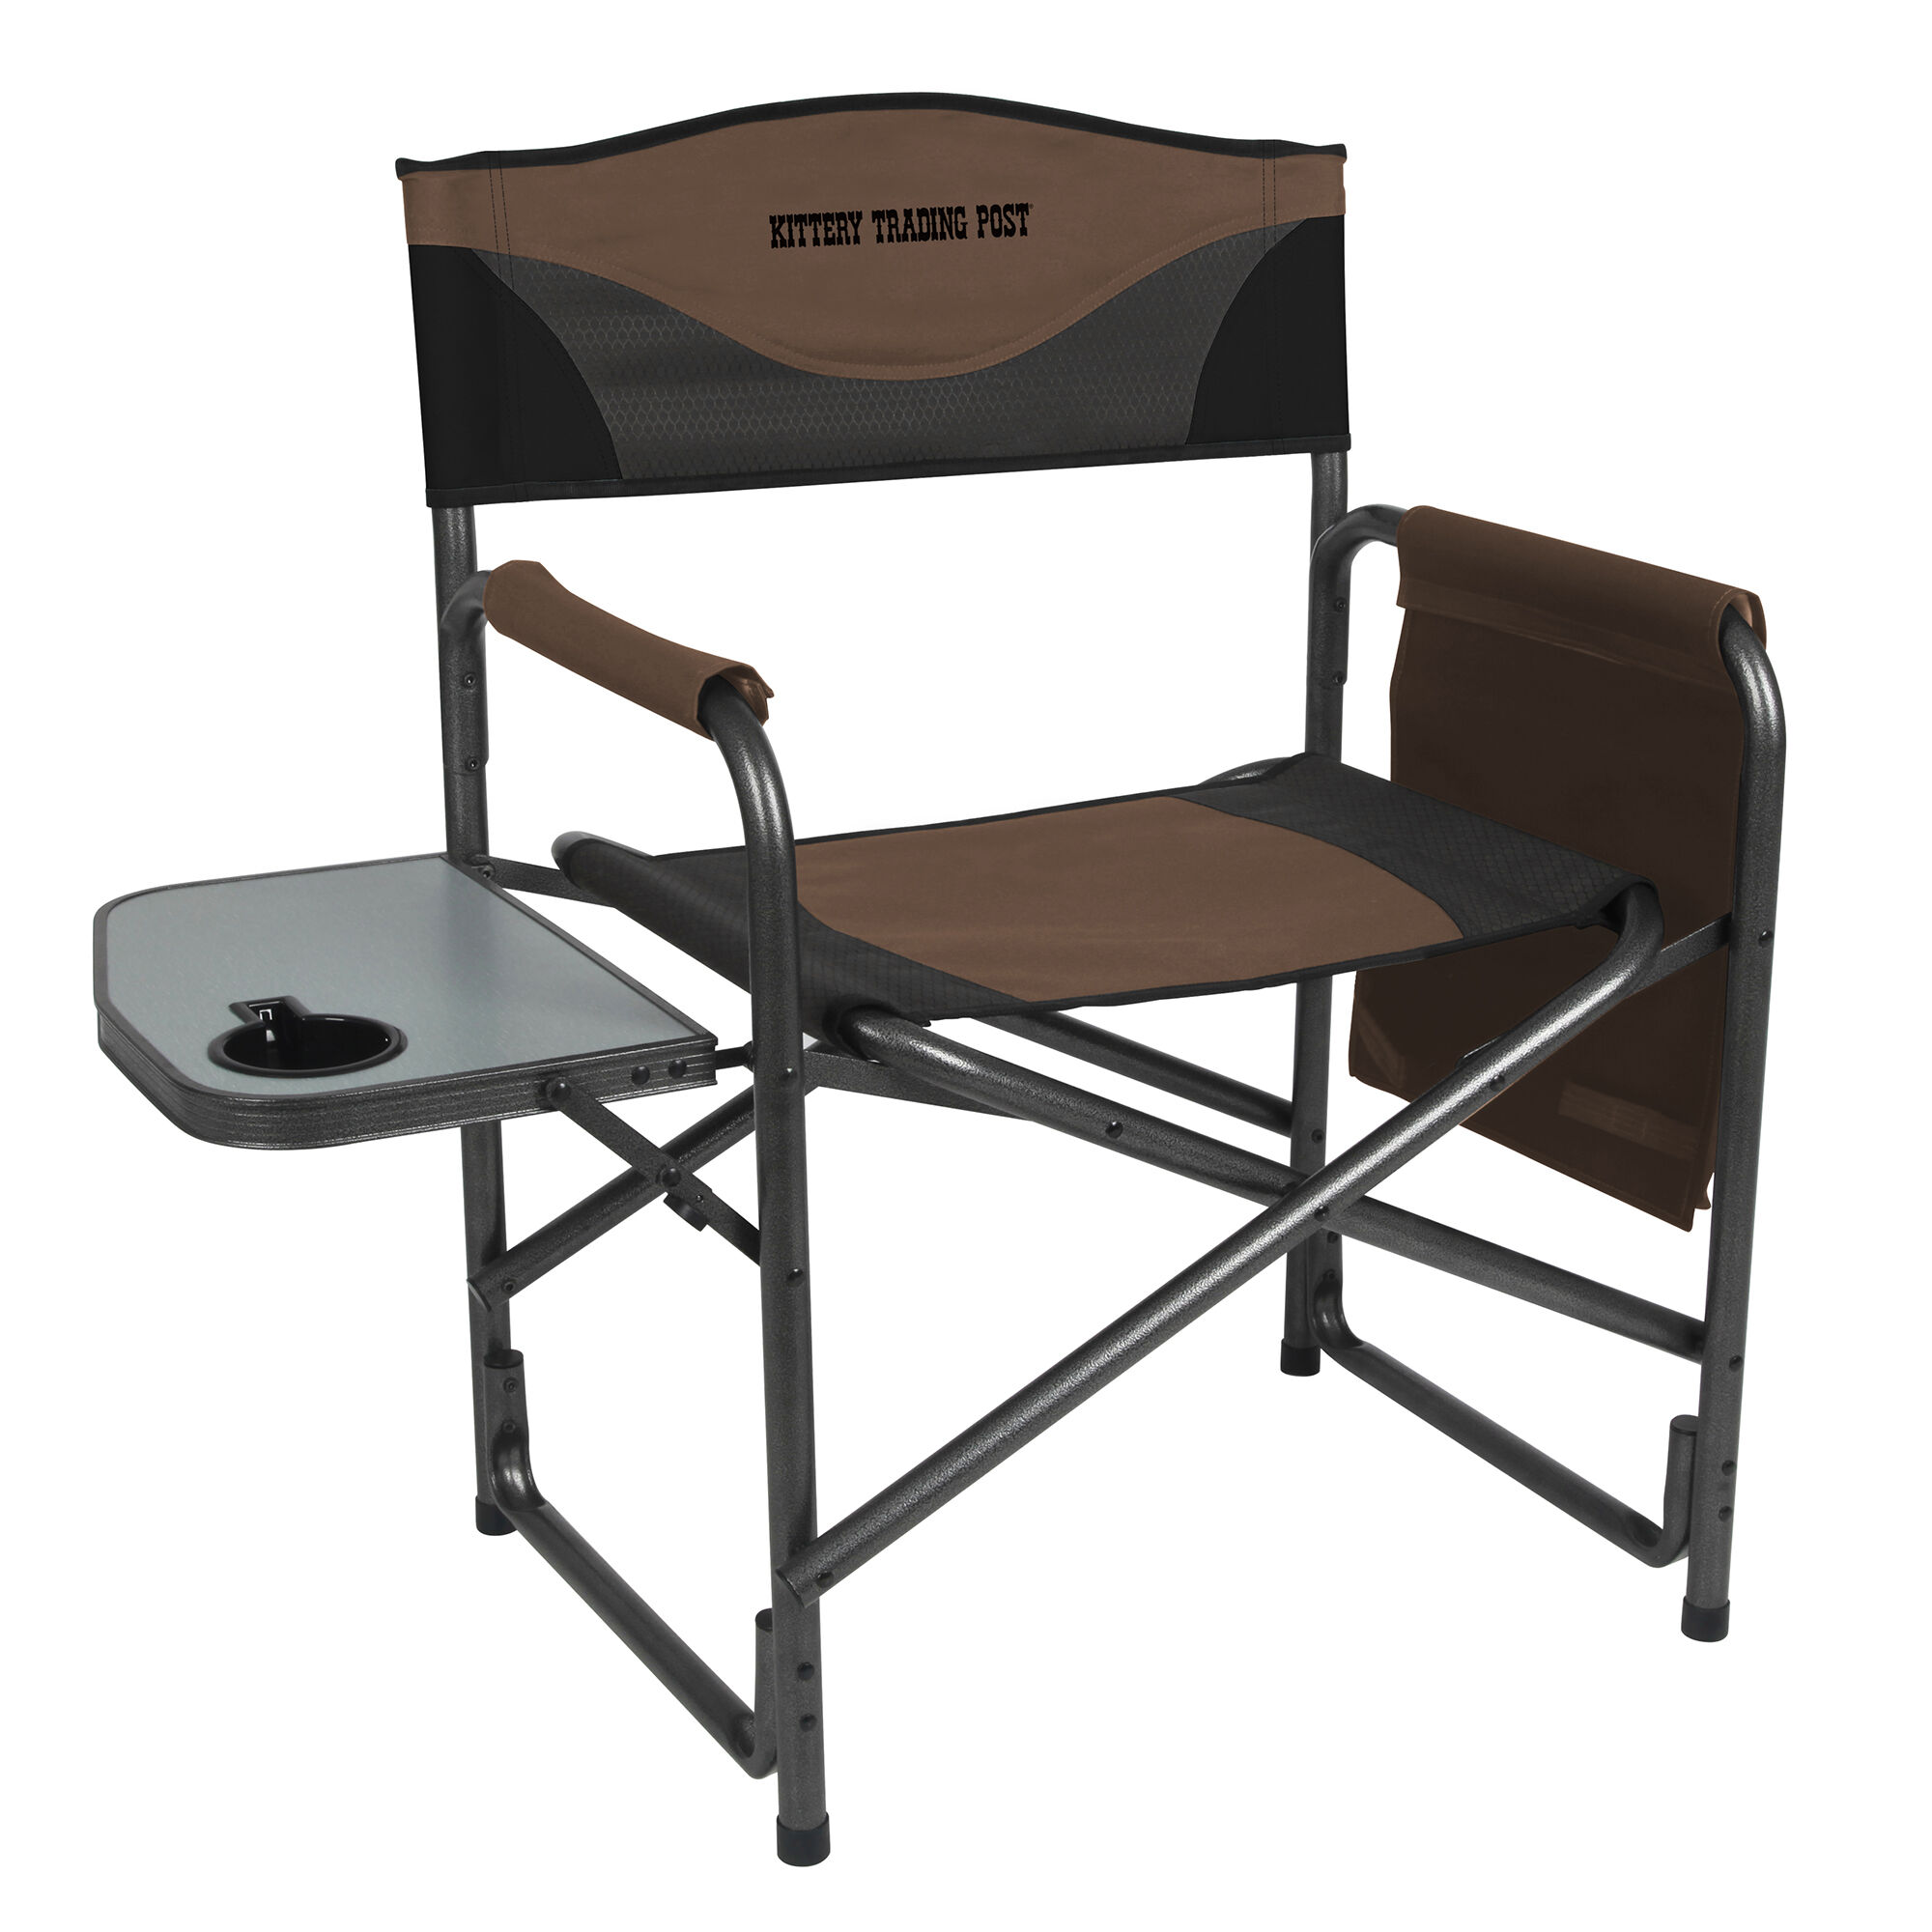 aluminum directors chair brown leather high back dining chairs portal director s w side table kittery trading post logo